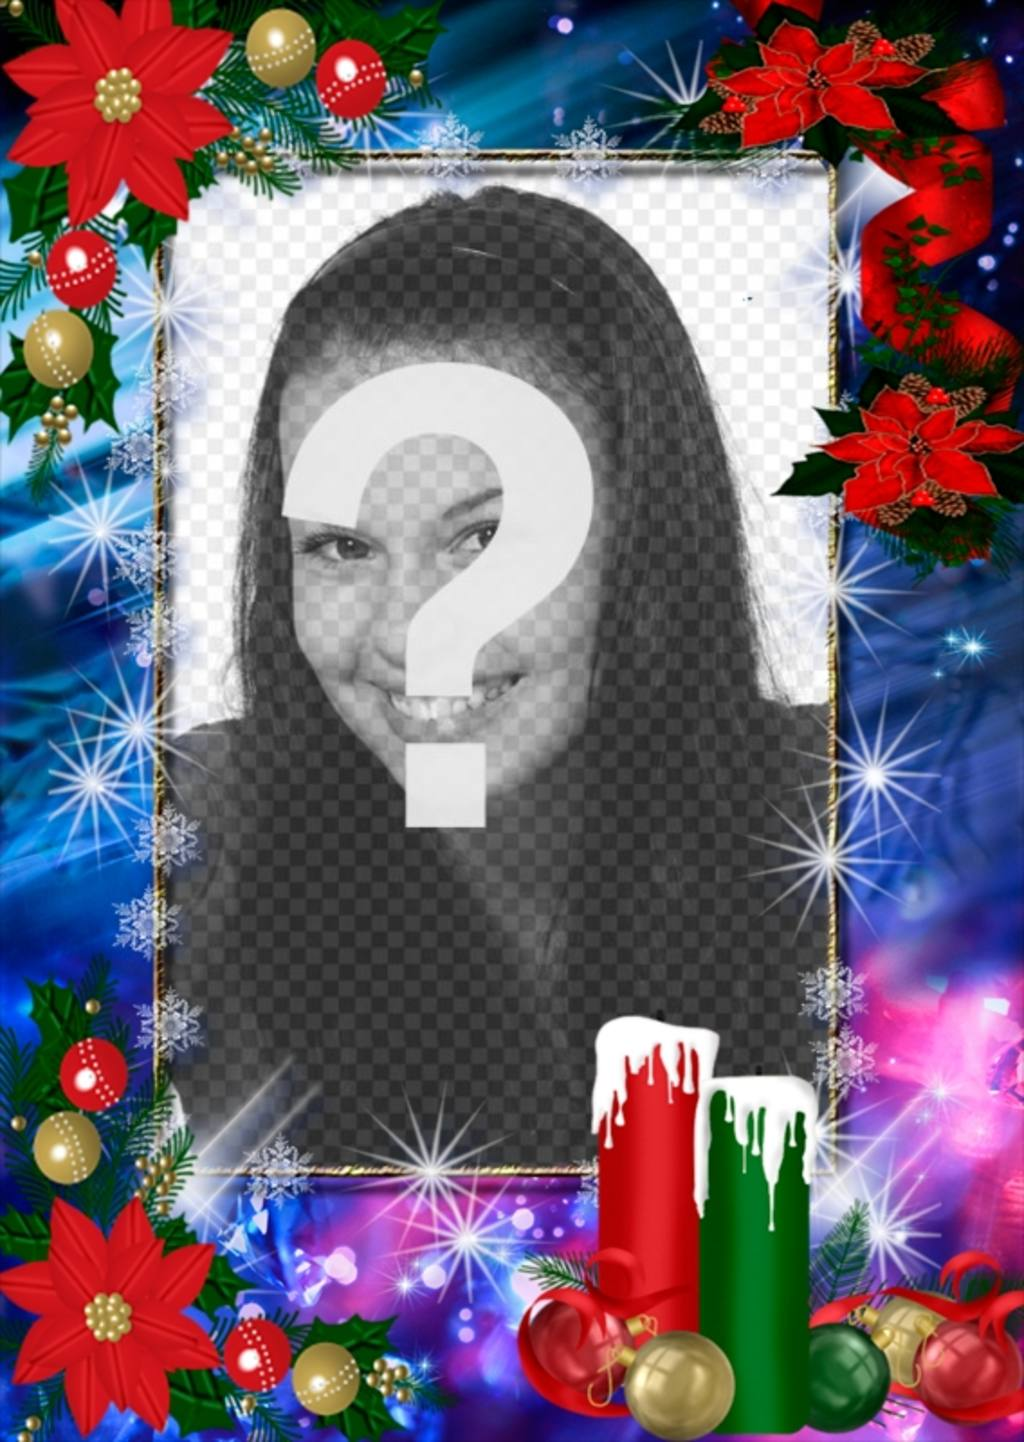 Photo frame decorated for Christmas and you can customize with your photo